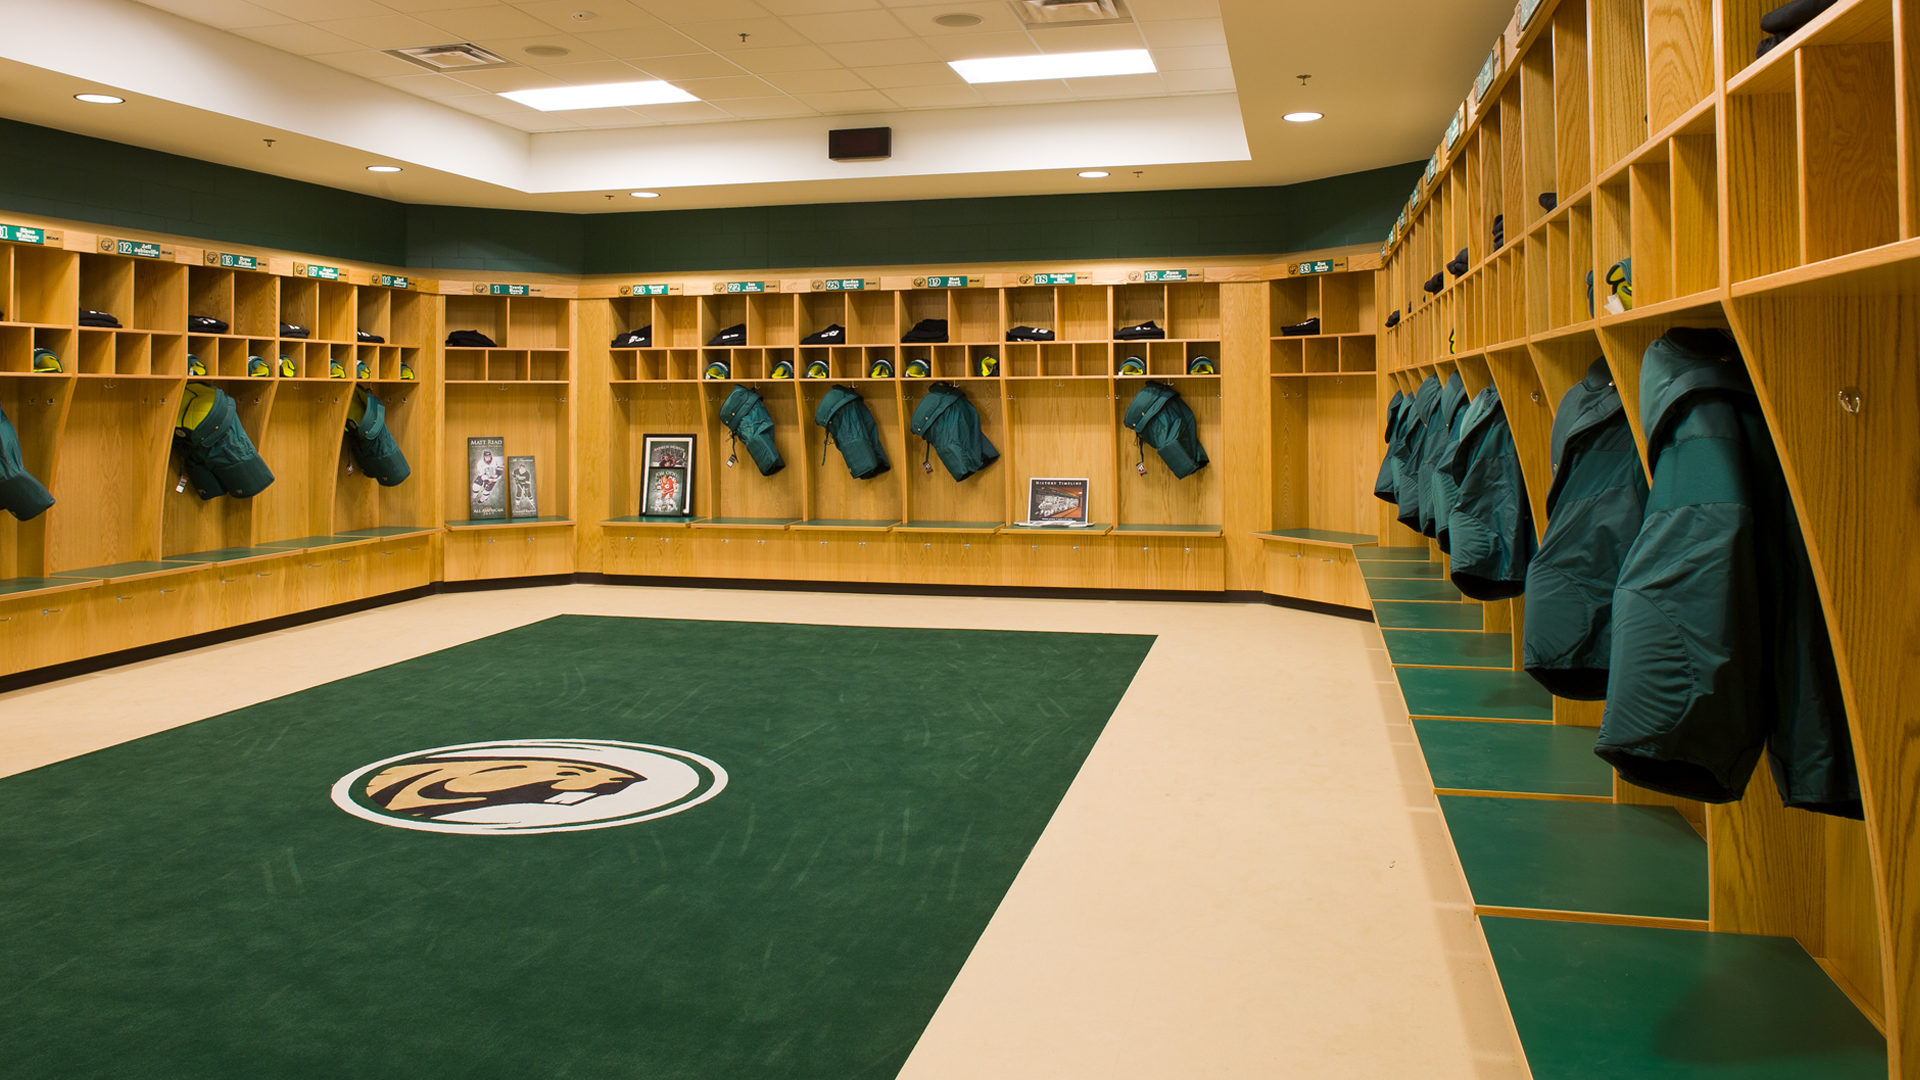 Sanford Center Ice Arena Bemidji MN Government BSU Locker Room